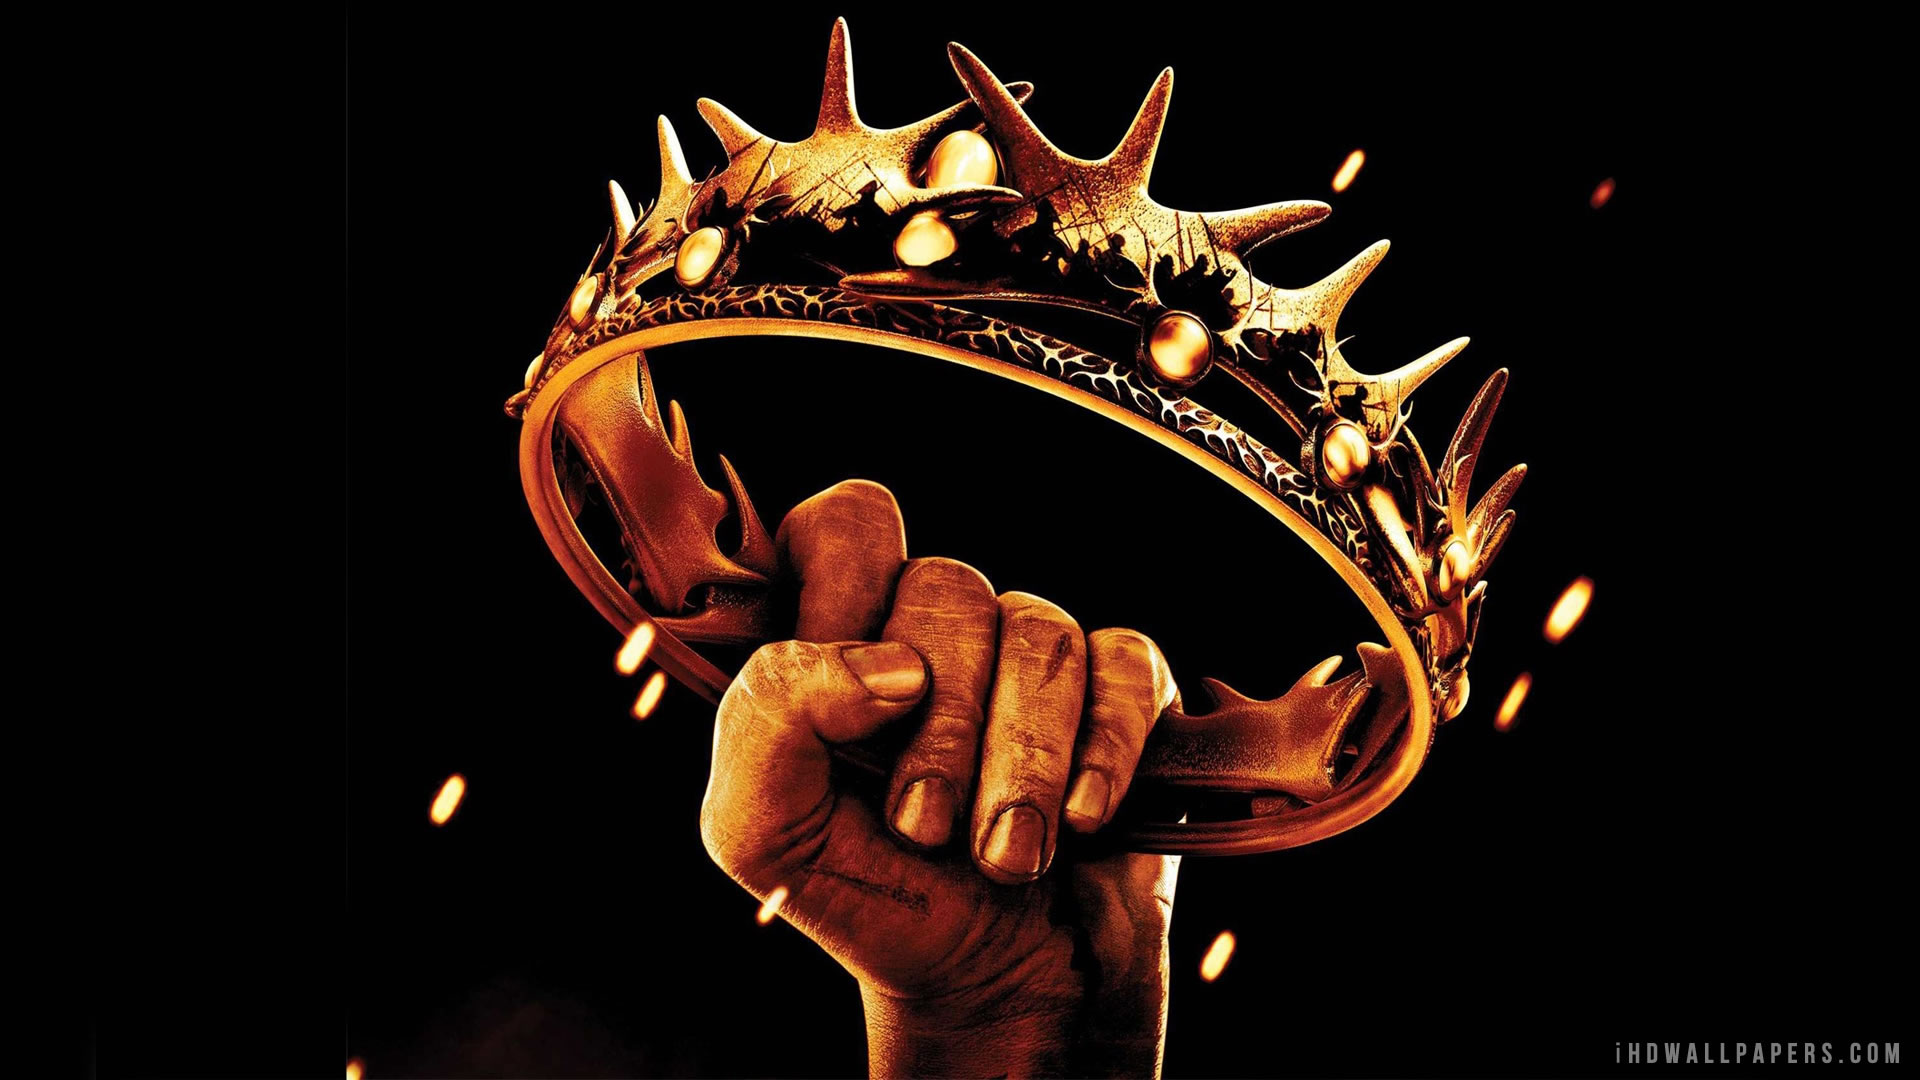 game of thrones hd wallpapers for mobile,hand,finger,performance,photography,music